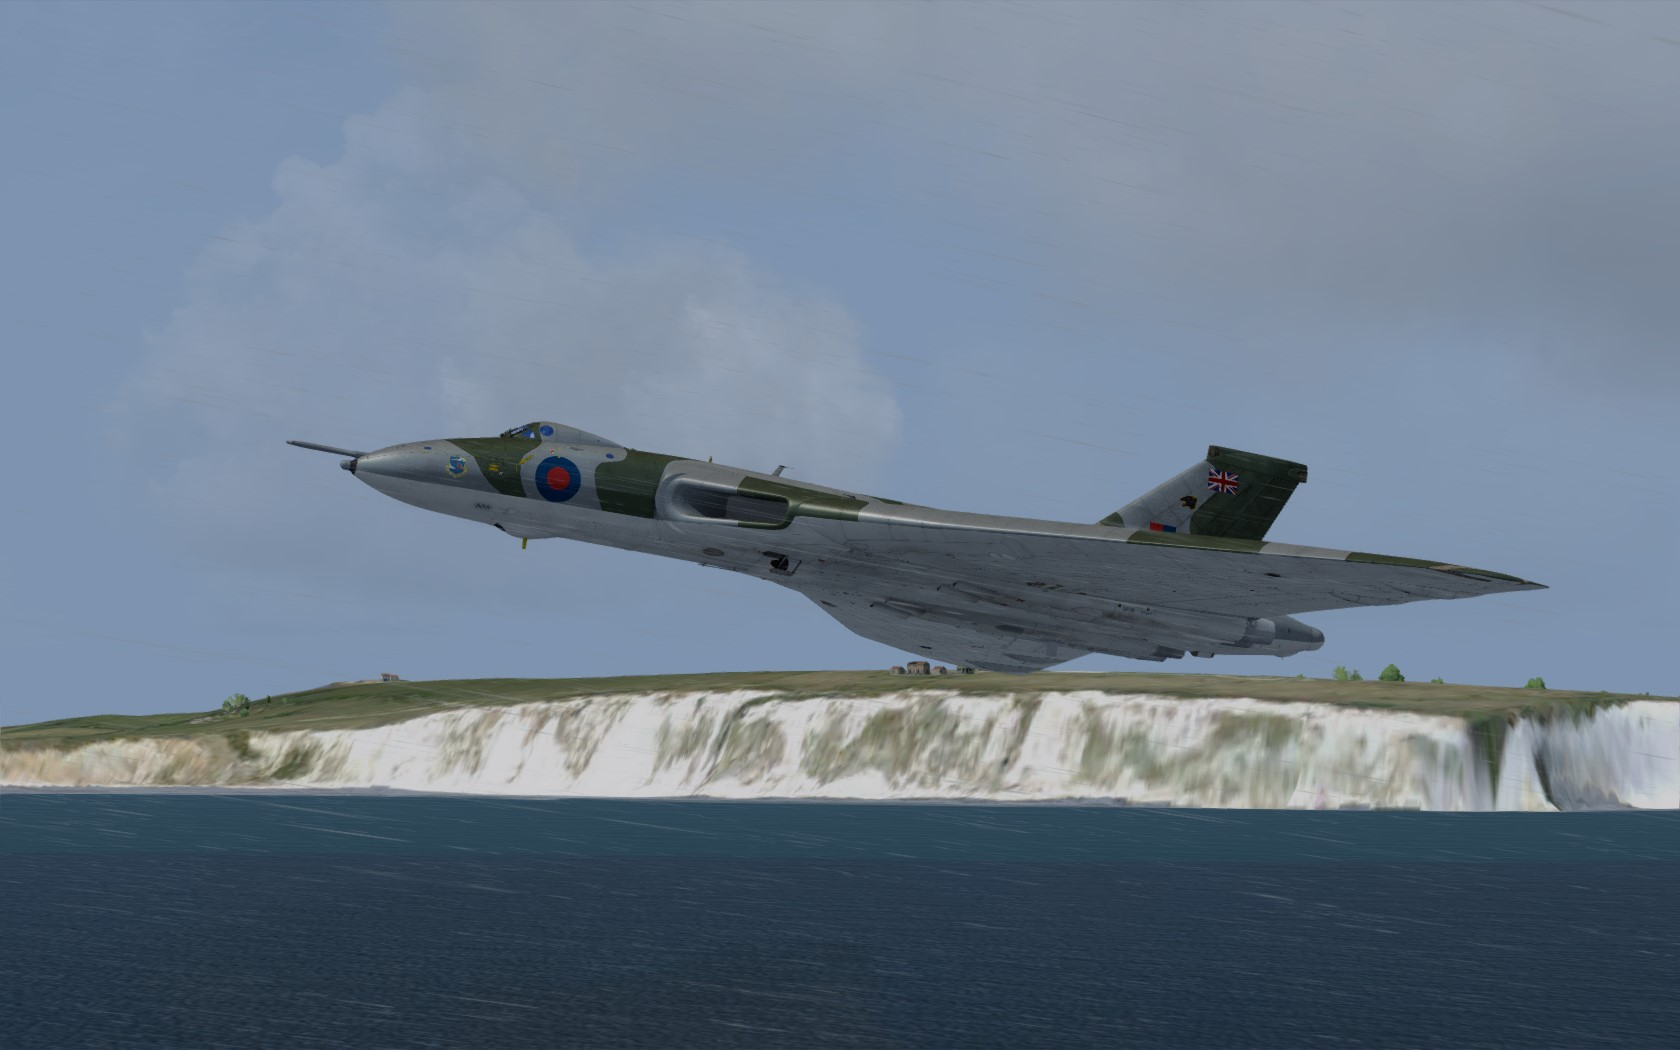 JUSTFLIGHT - VFR REAL SCENERY NEXGEN 3D VOL 1 SOUTHERN ENGLAND & SOUTH WALES FSX P3D